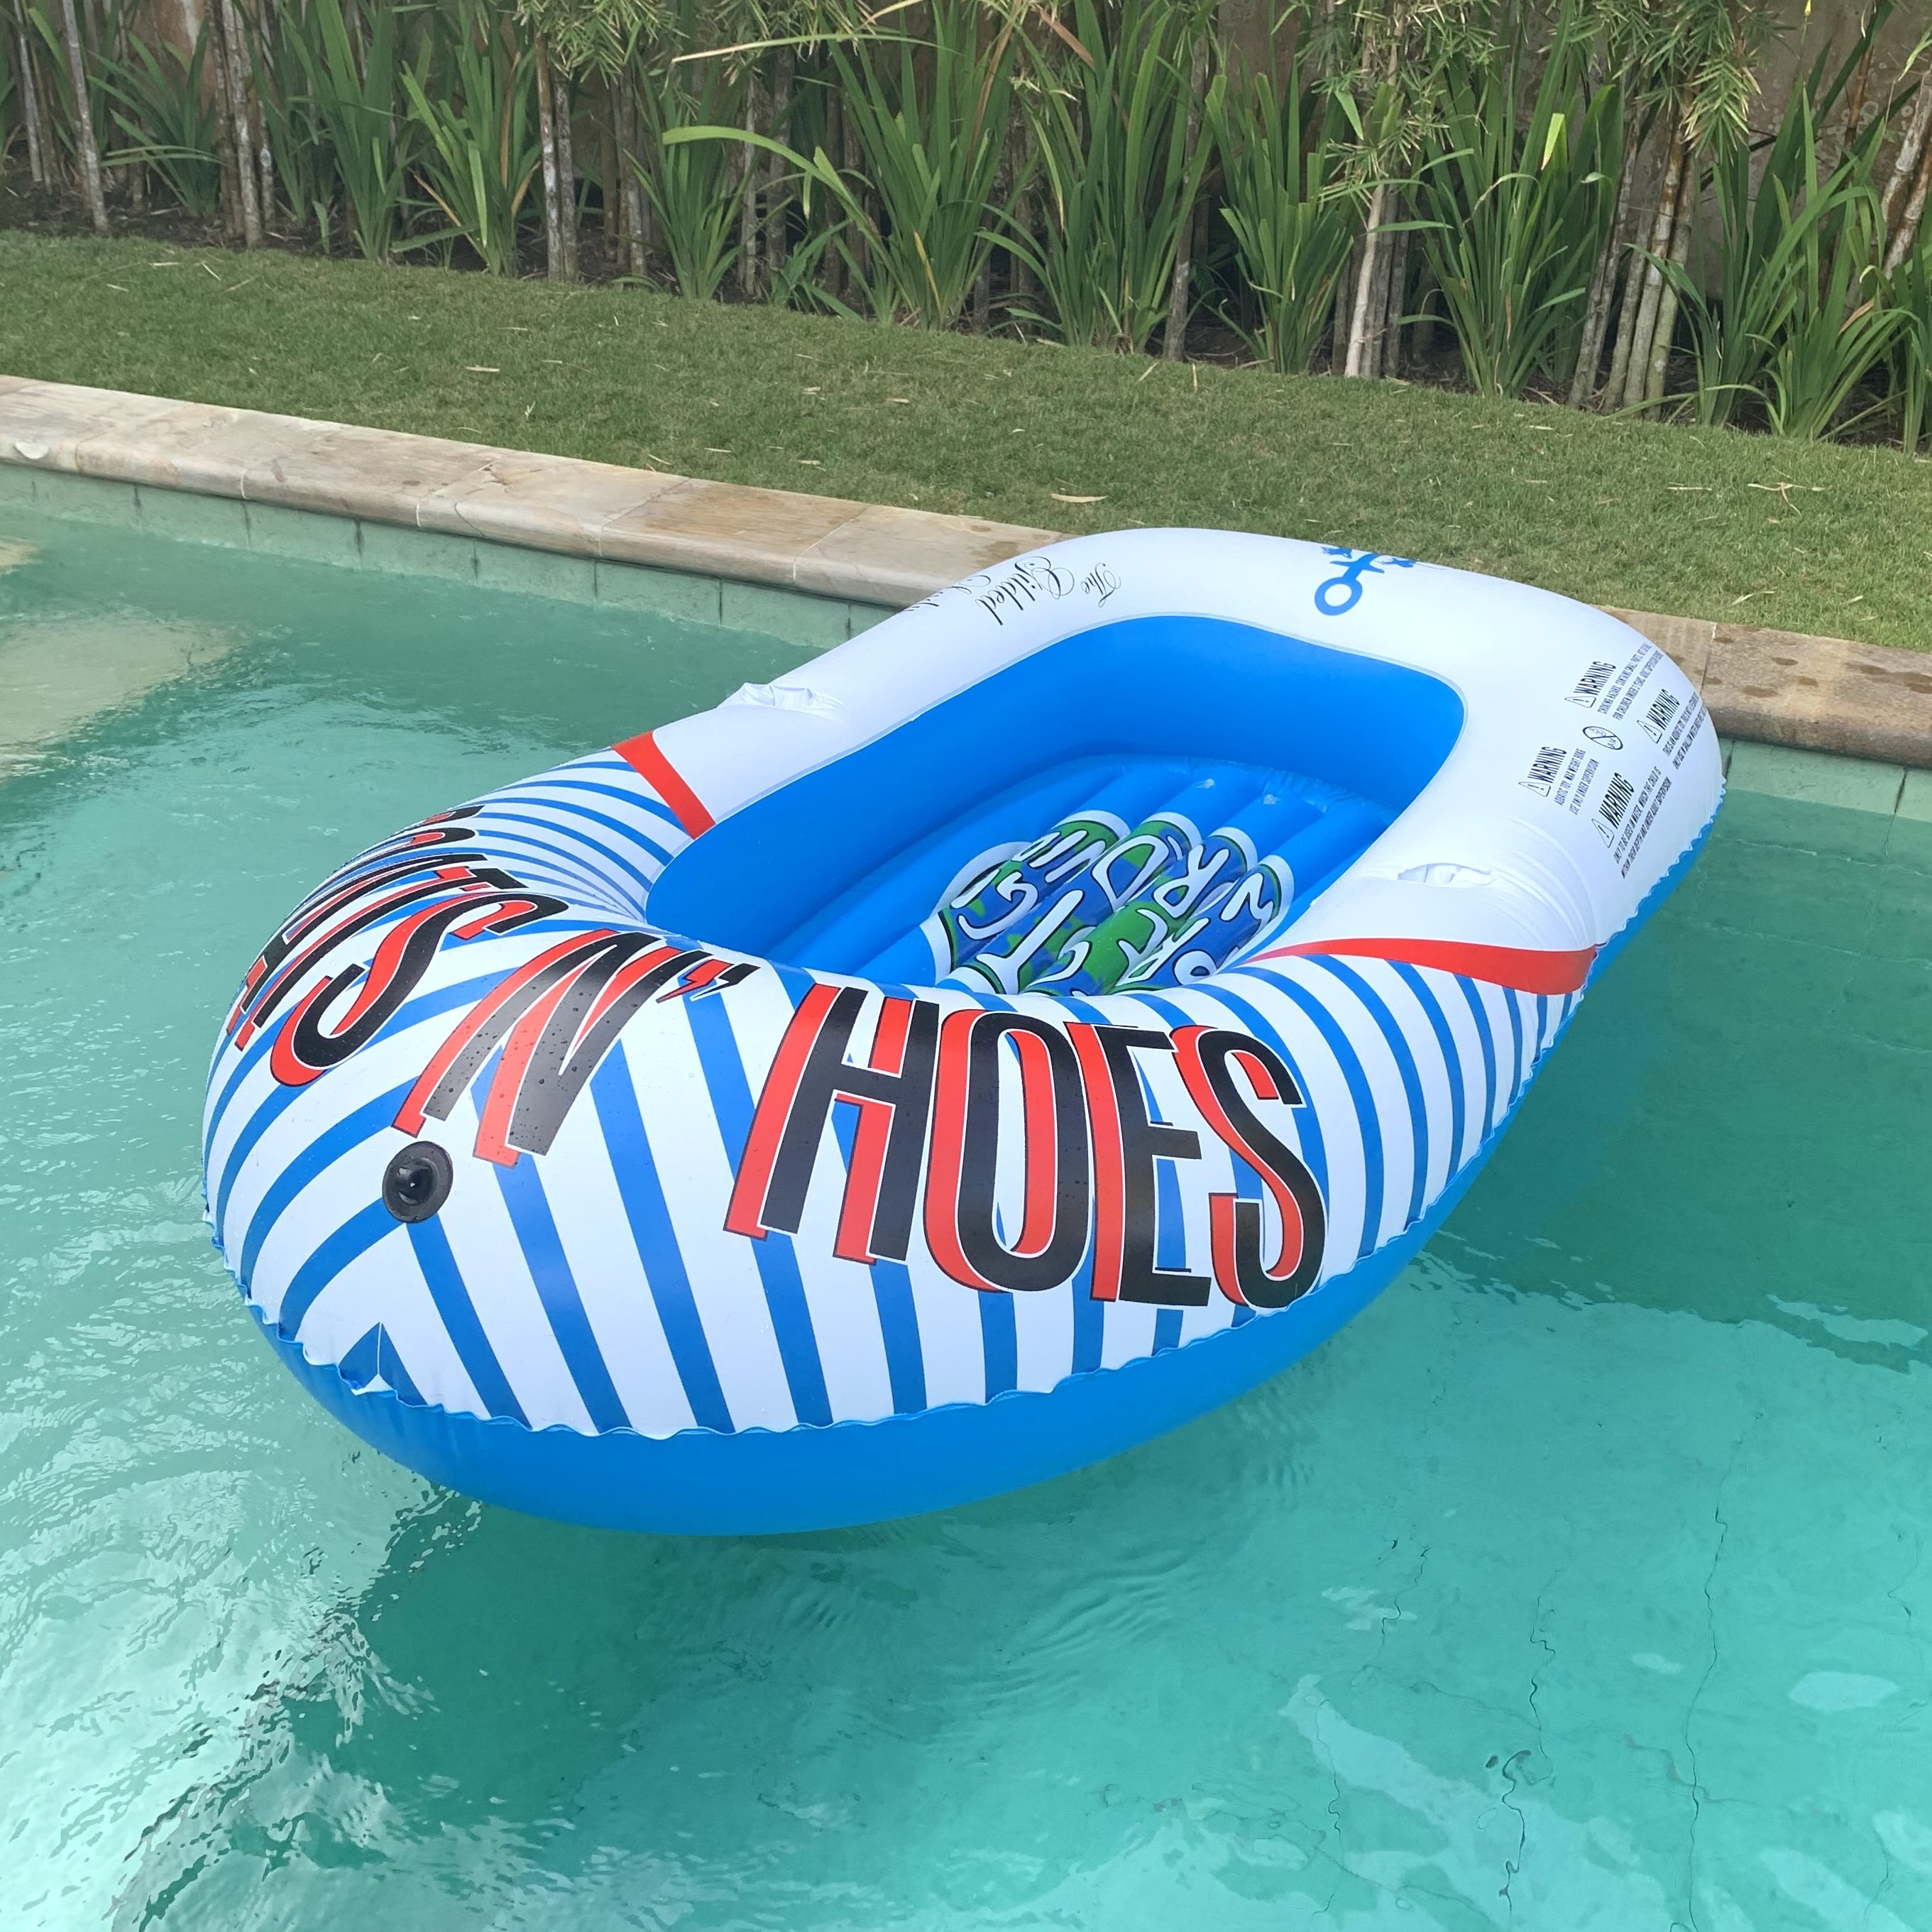 THE GILDED LADY BOATS N HOES INFLATABLE BOAT